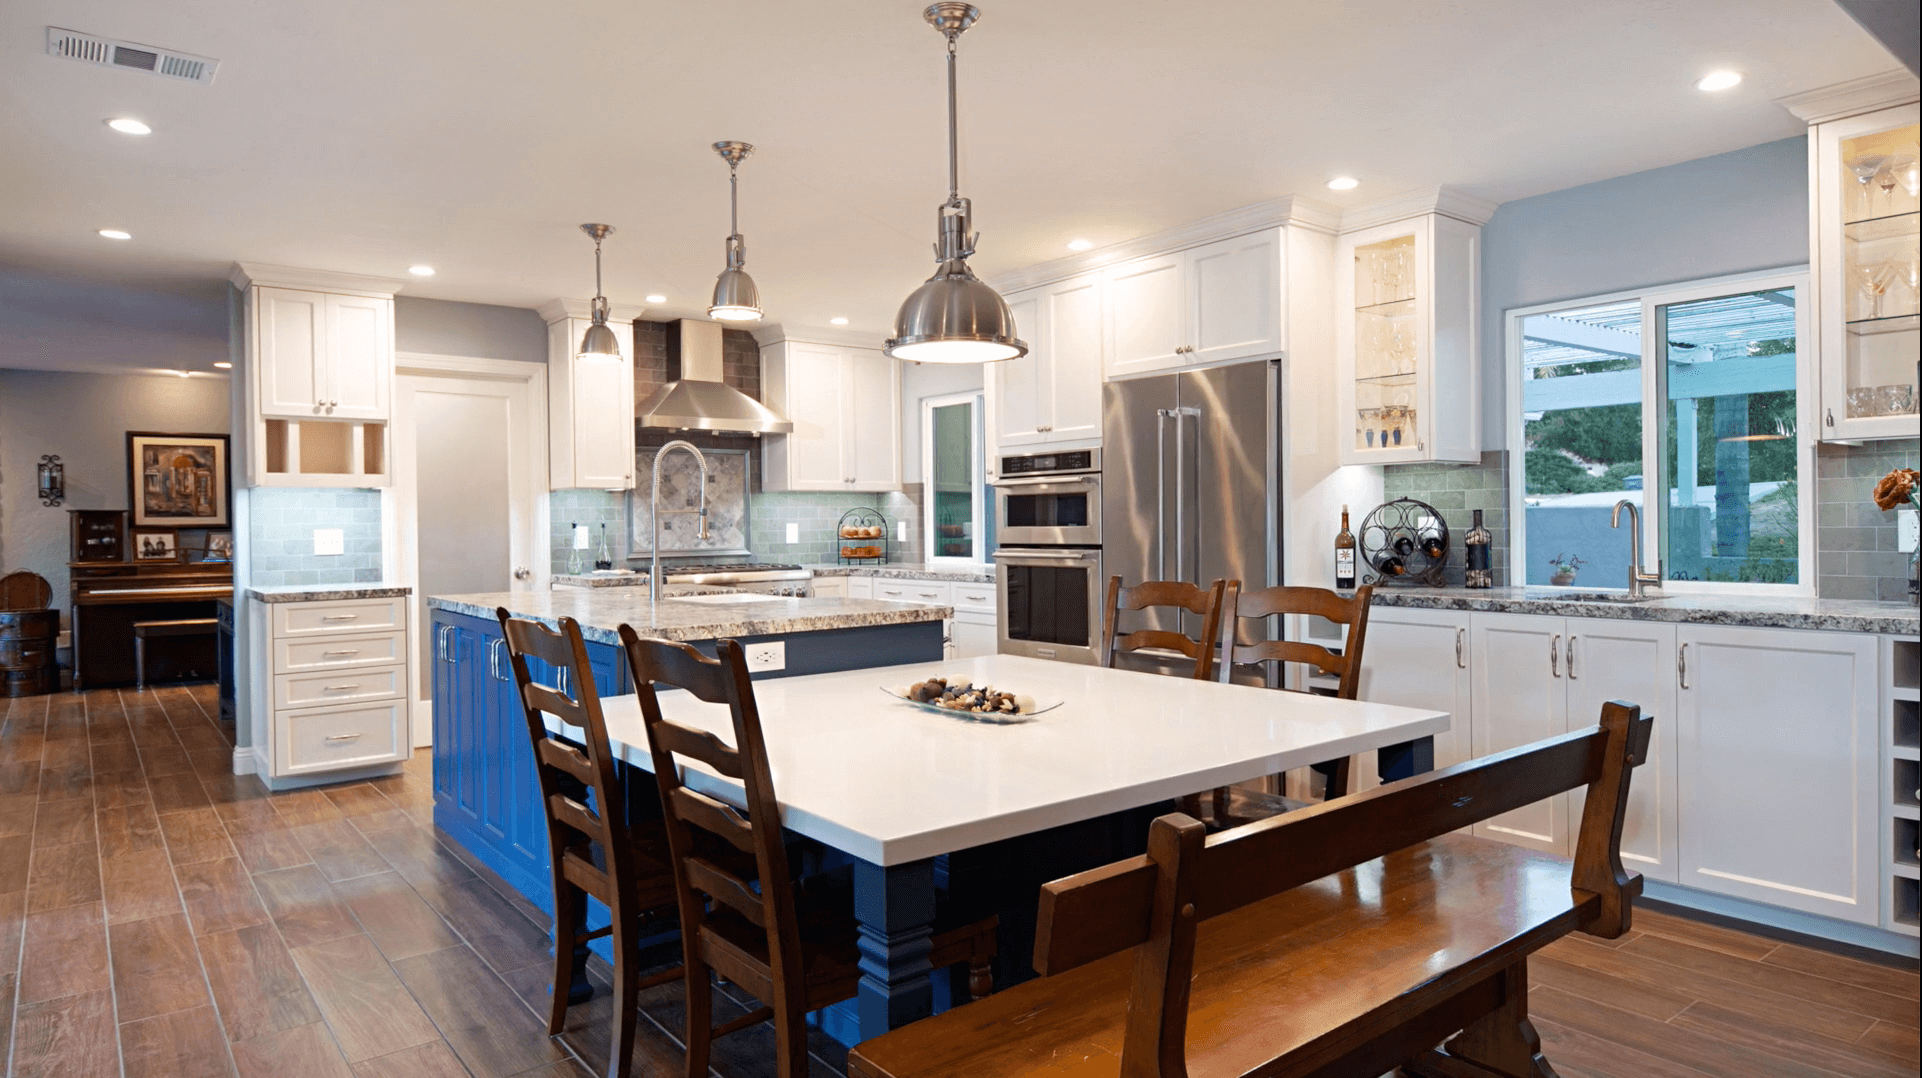 A successful kitchen remodel will unite form and function